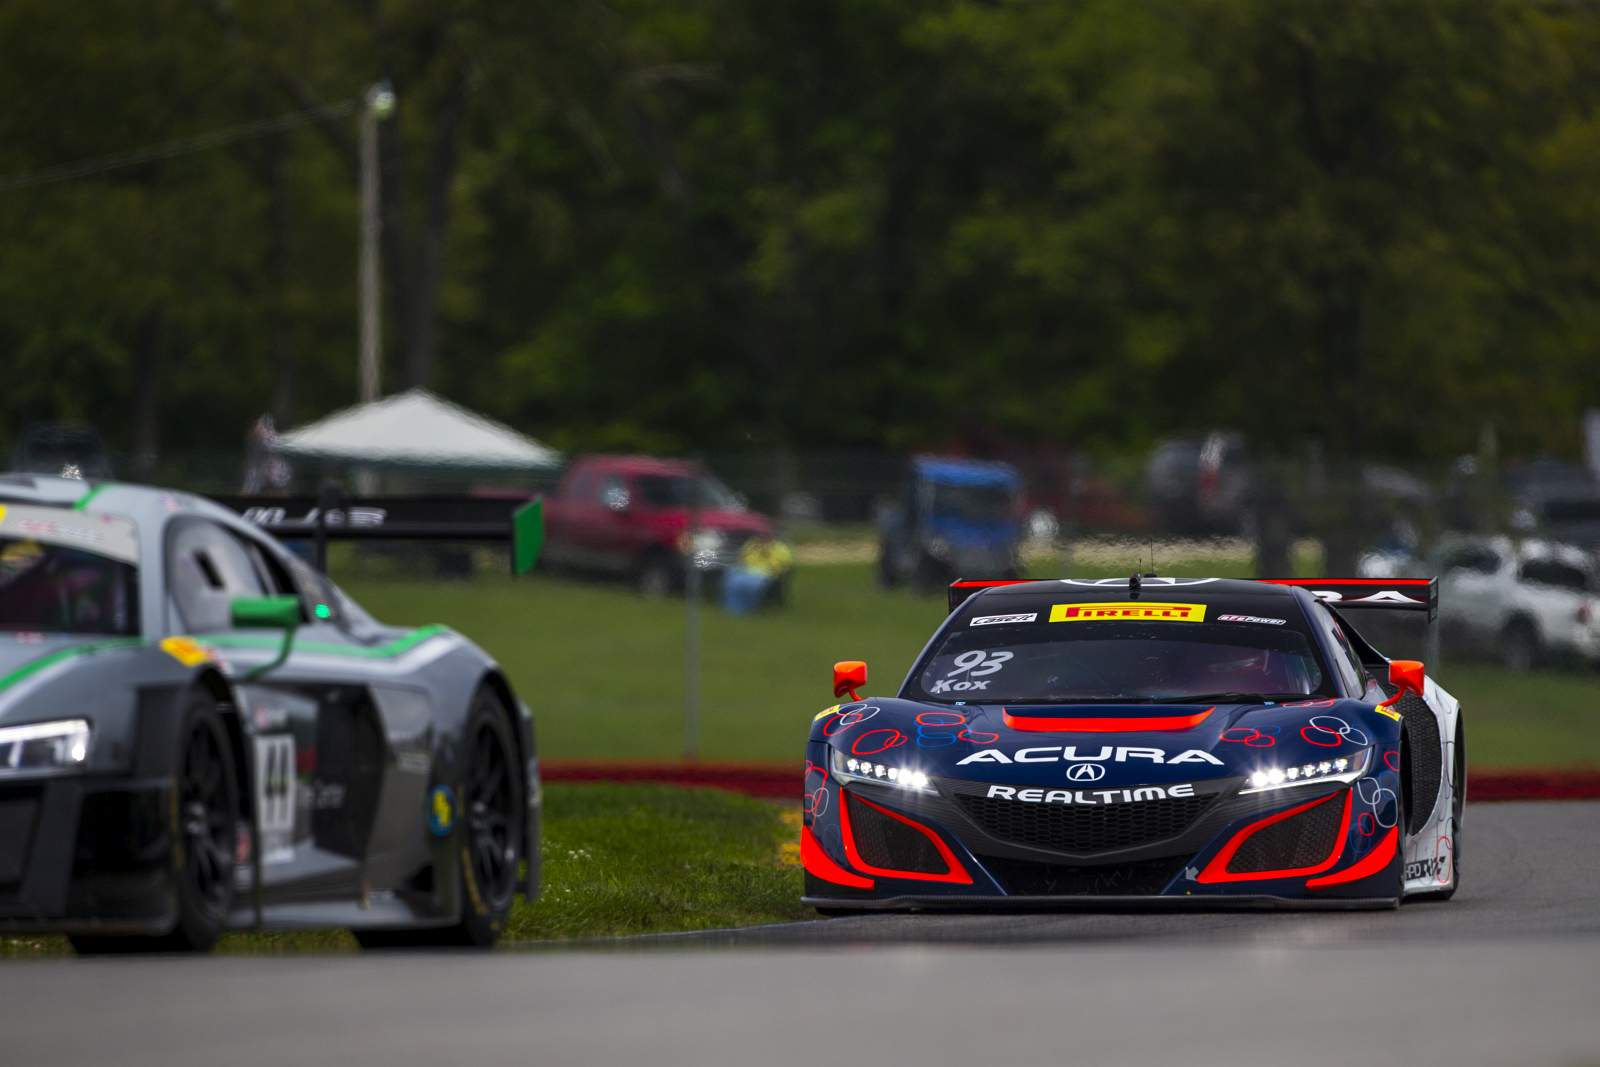 peter-kox-realtime-racing-pirelli-world-challenge-mid-ohio-01